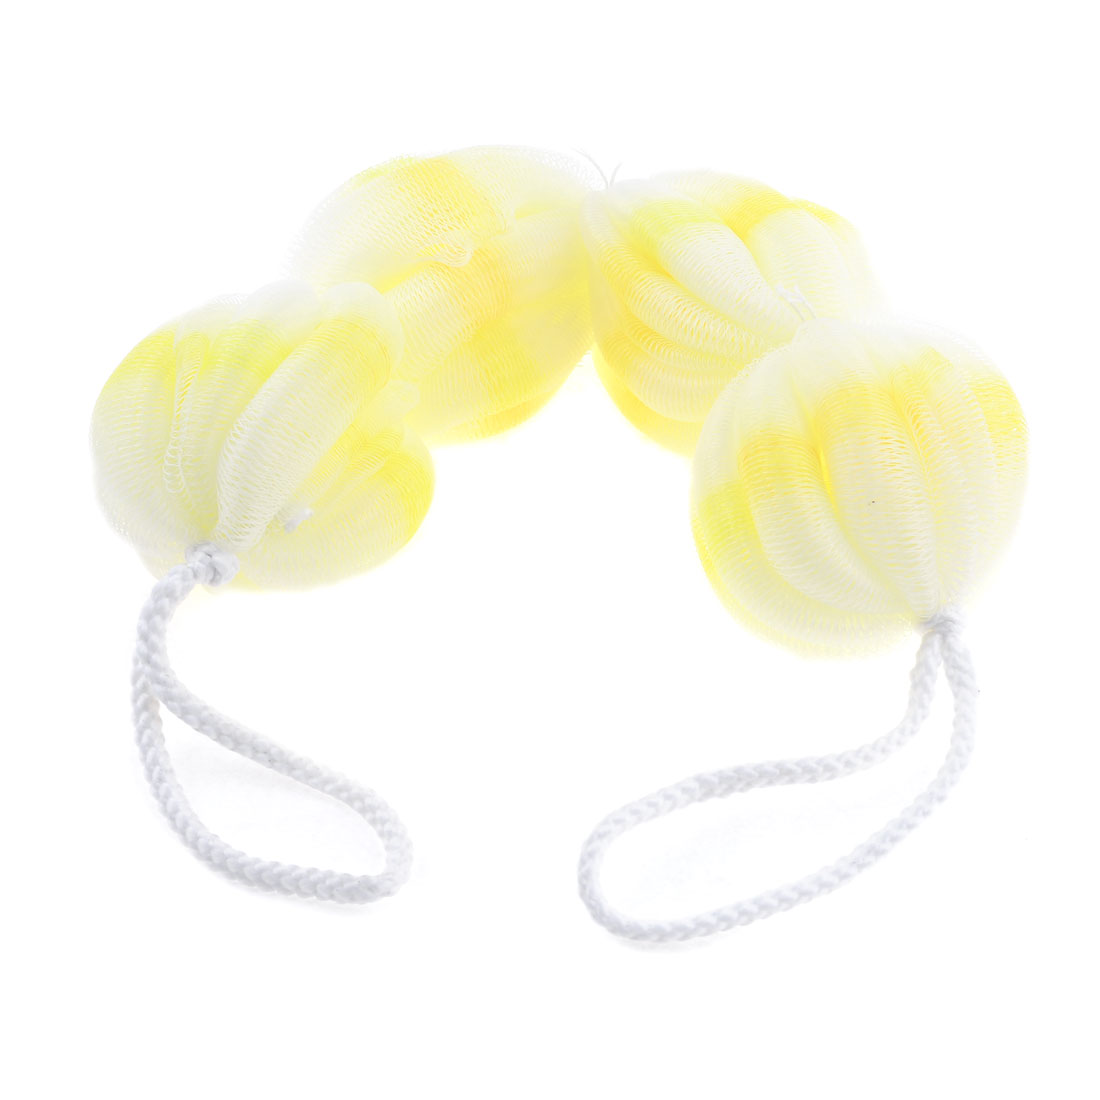 Double Hanging Hoops Four Oval Ball Shaped Mesh Bath Shower Pouf Yellow White